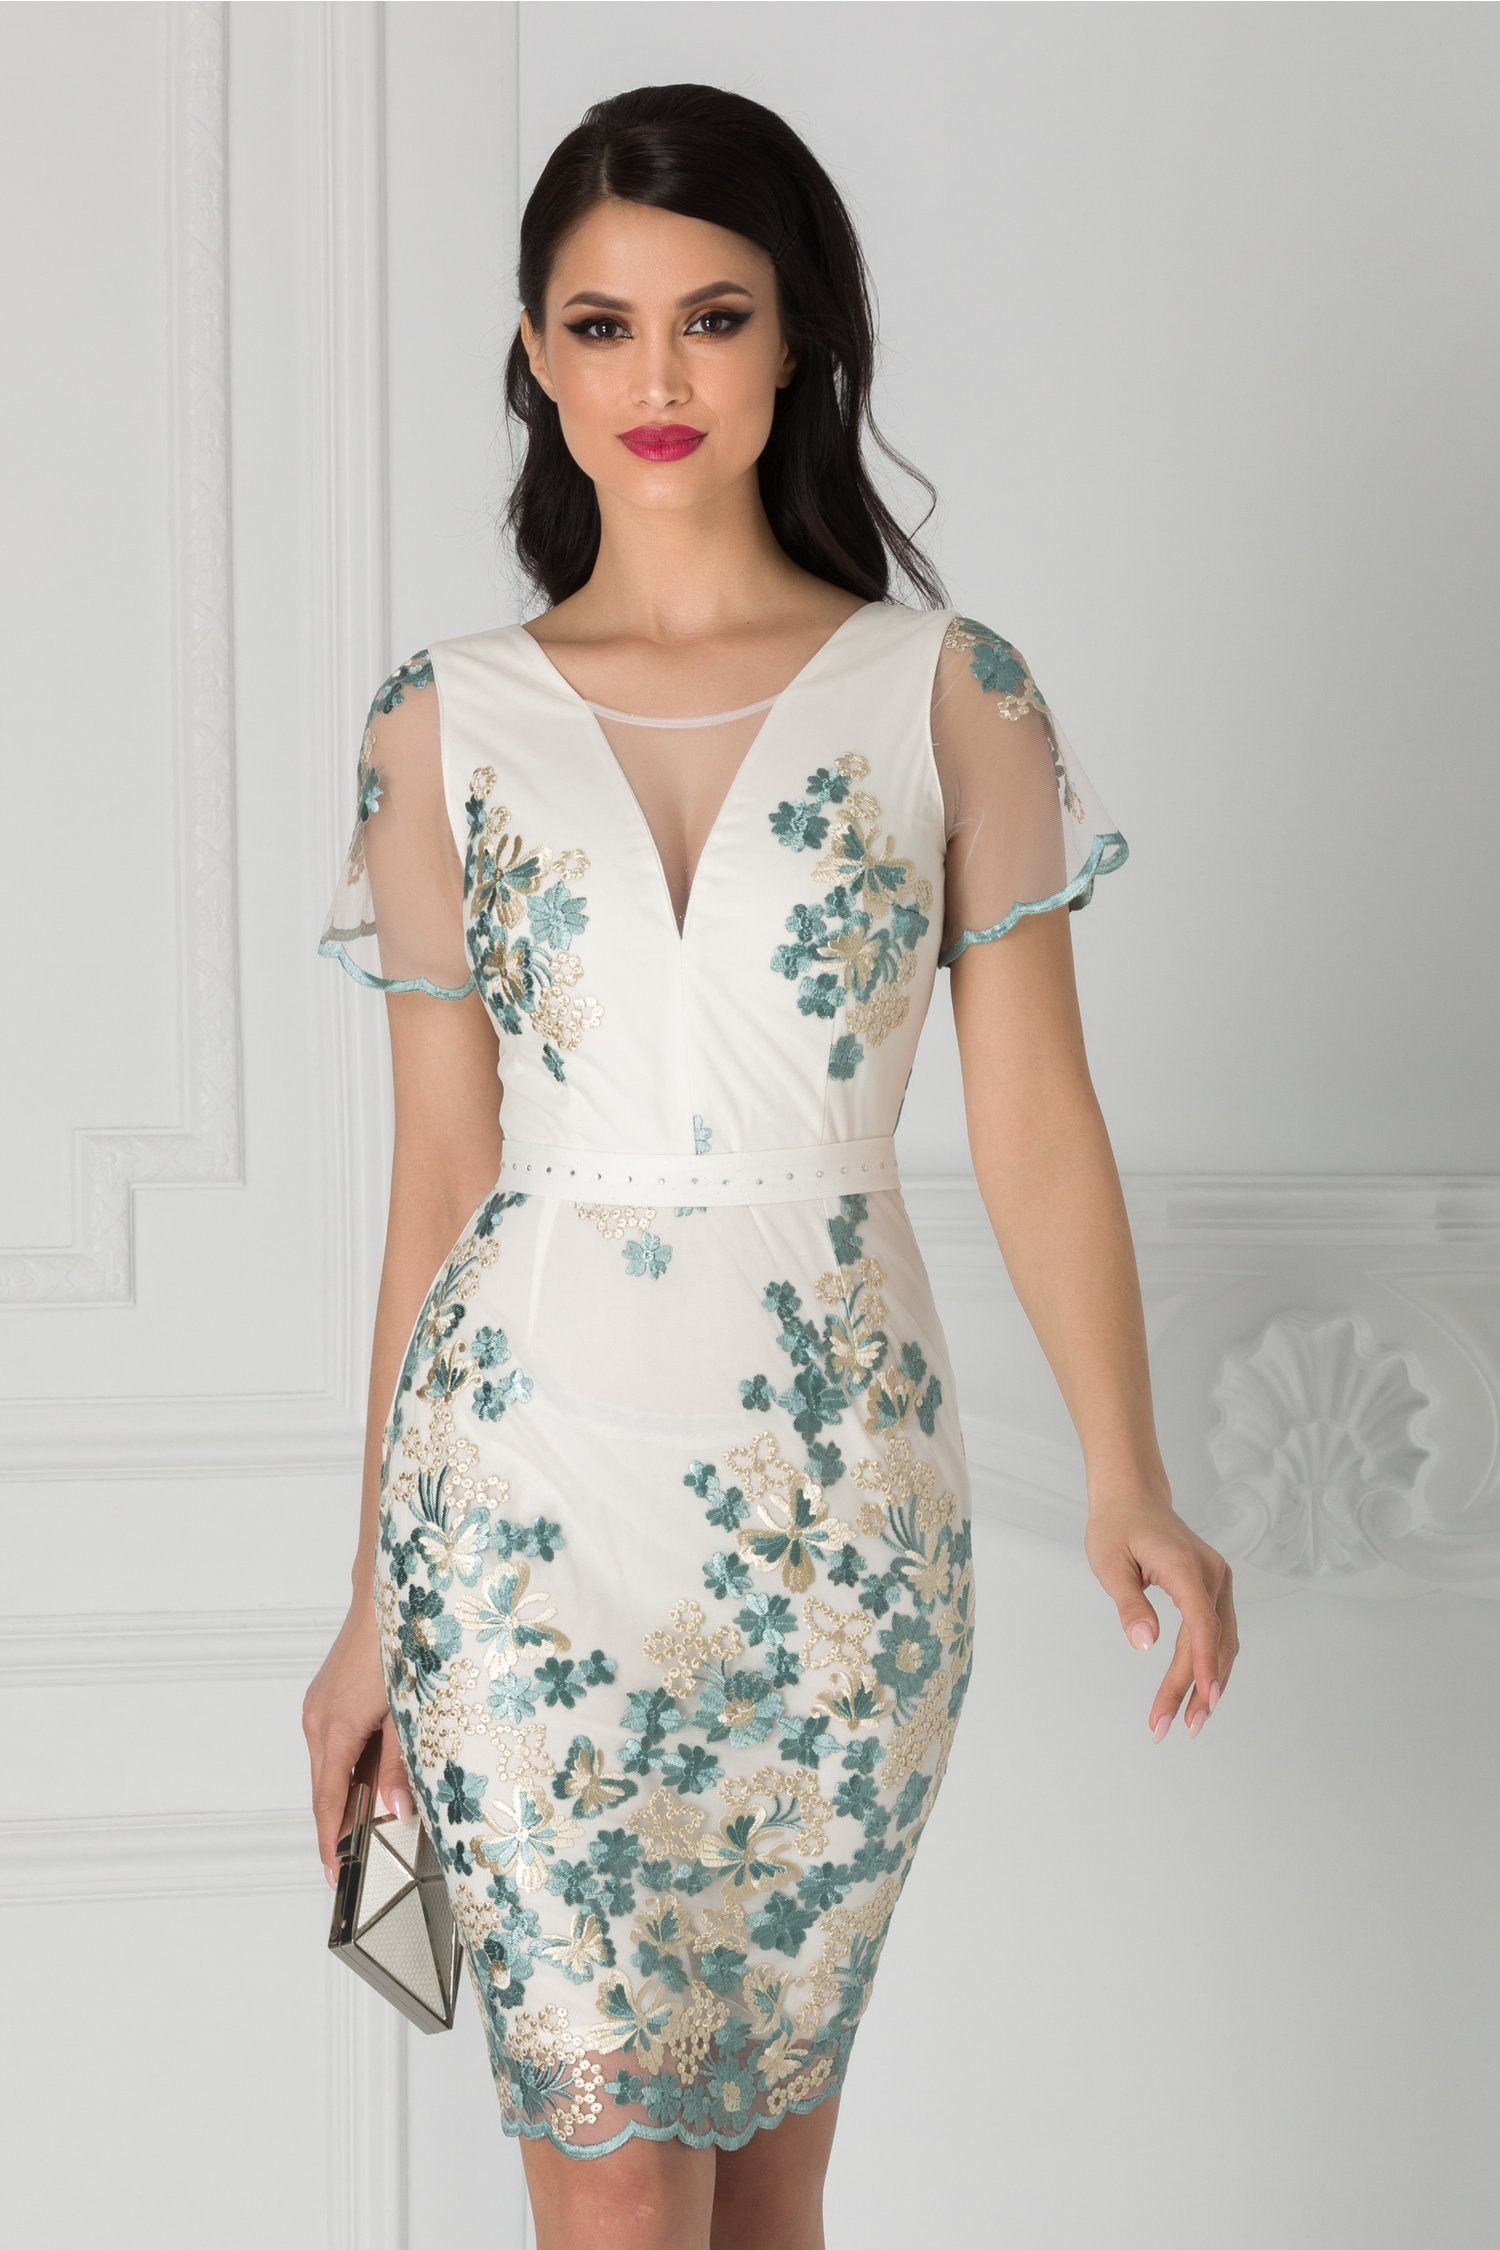 Rochie Anelie ivoire cu broderie florala si cordon in talie